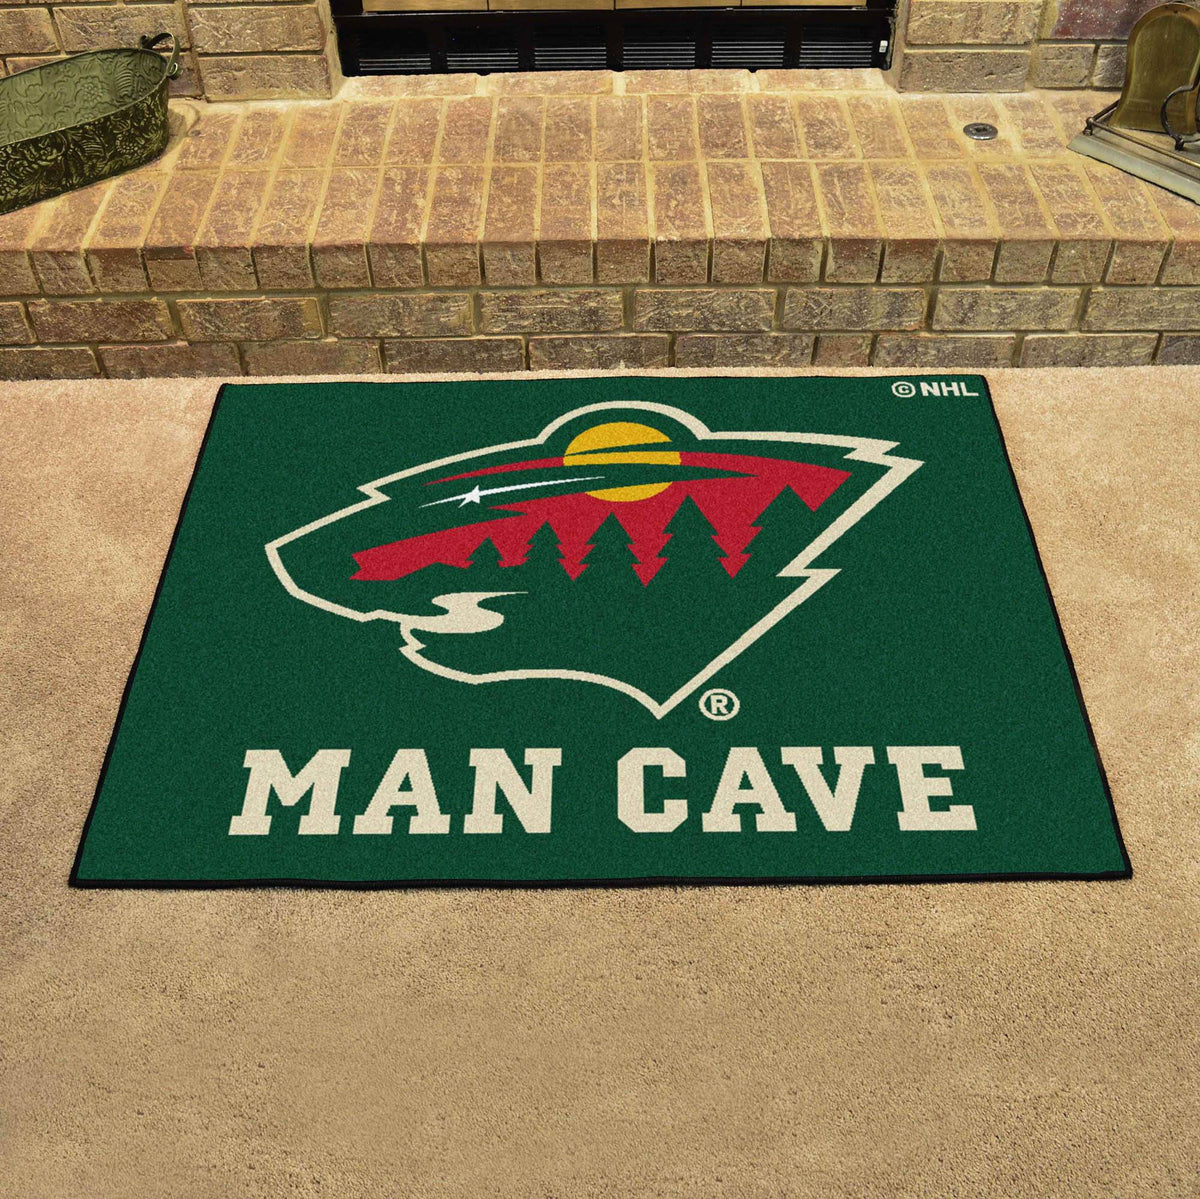 NHL - Man Cave All-Star NHL Mats, Rectangular Mats, Man Cave All-Star Mat, NHL, Home Fan Mats Minnesota Wild